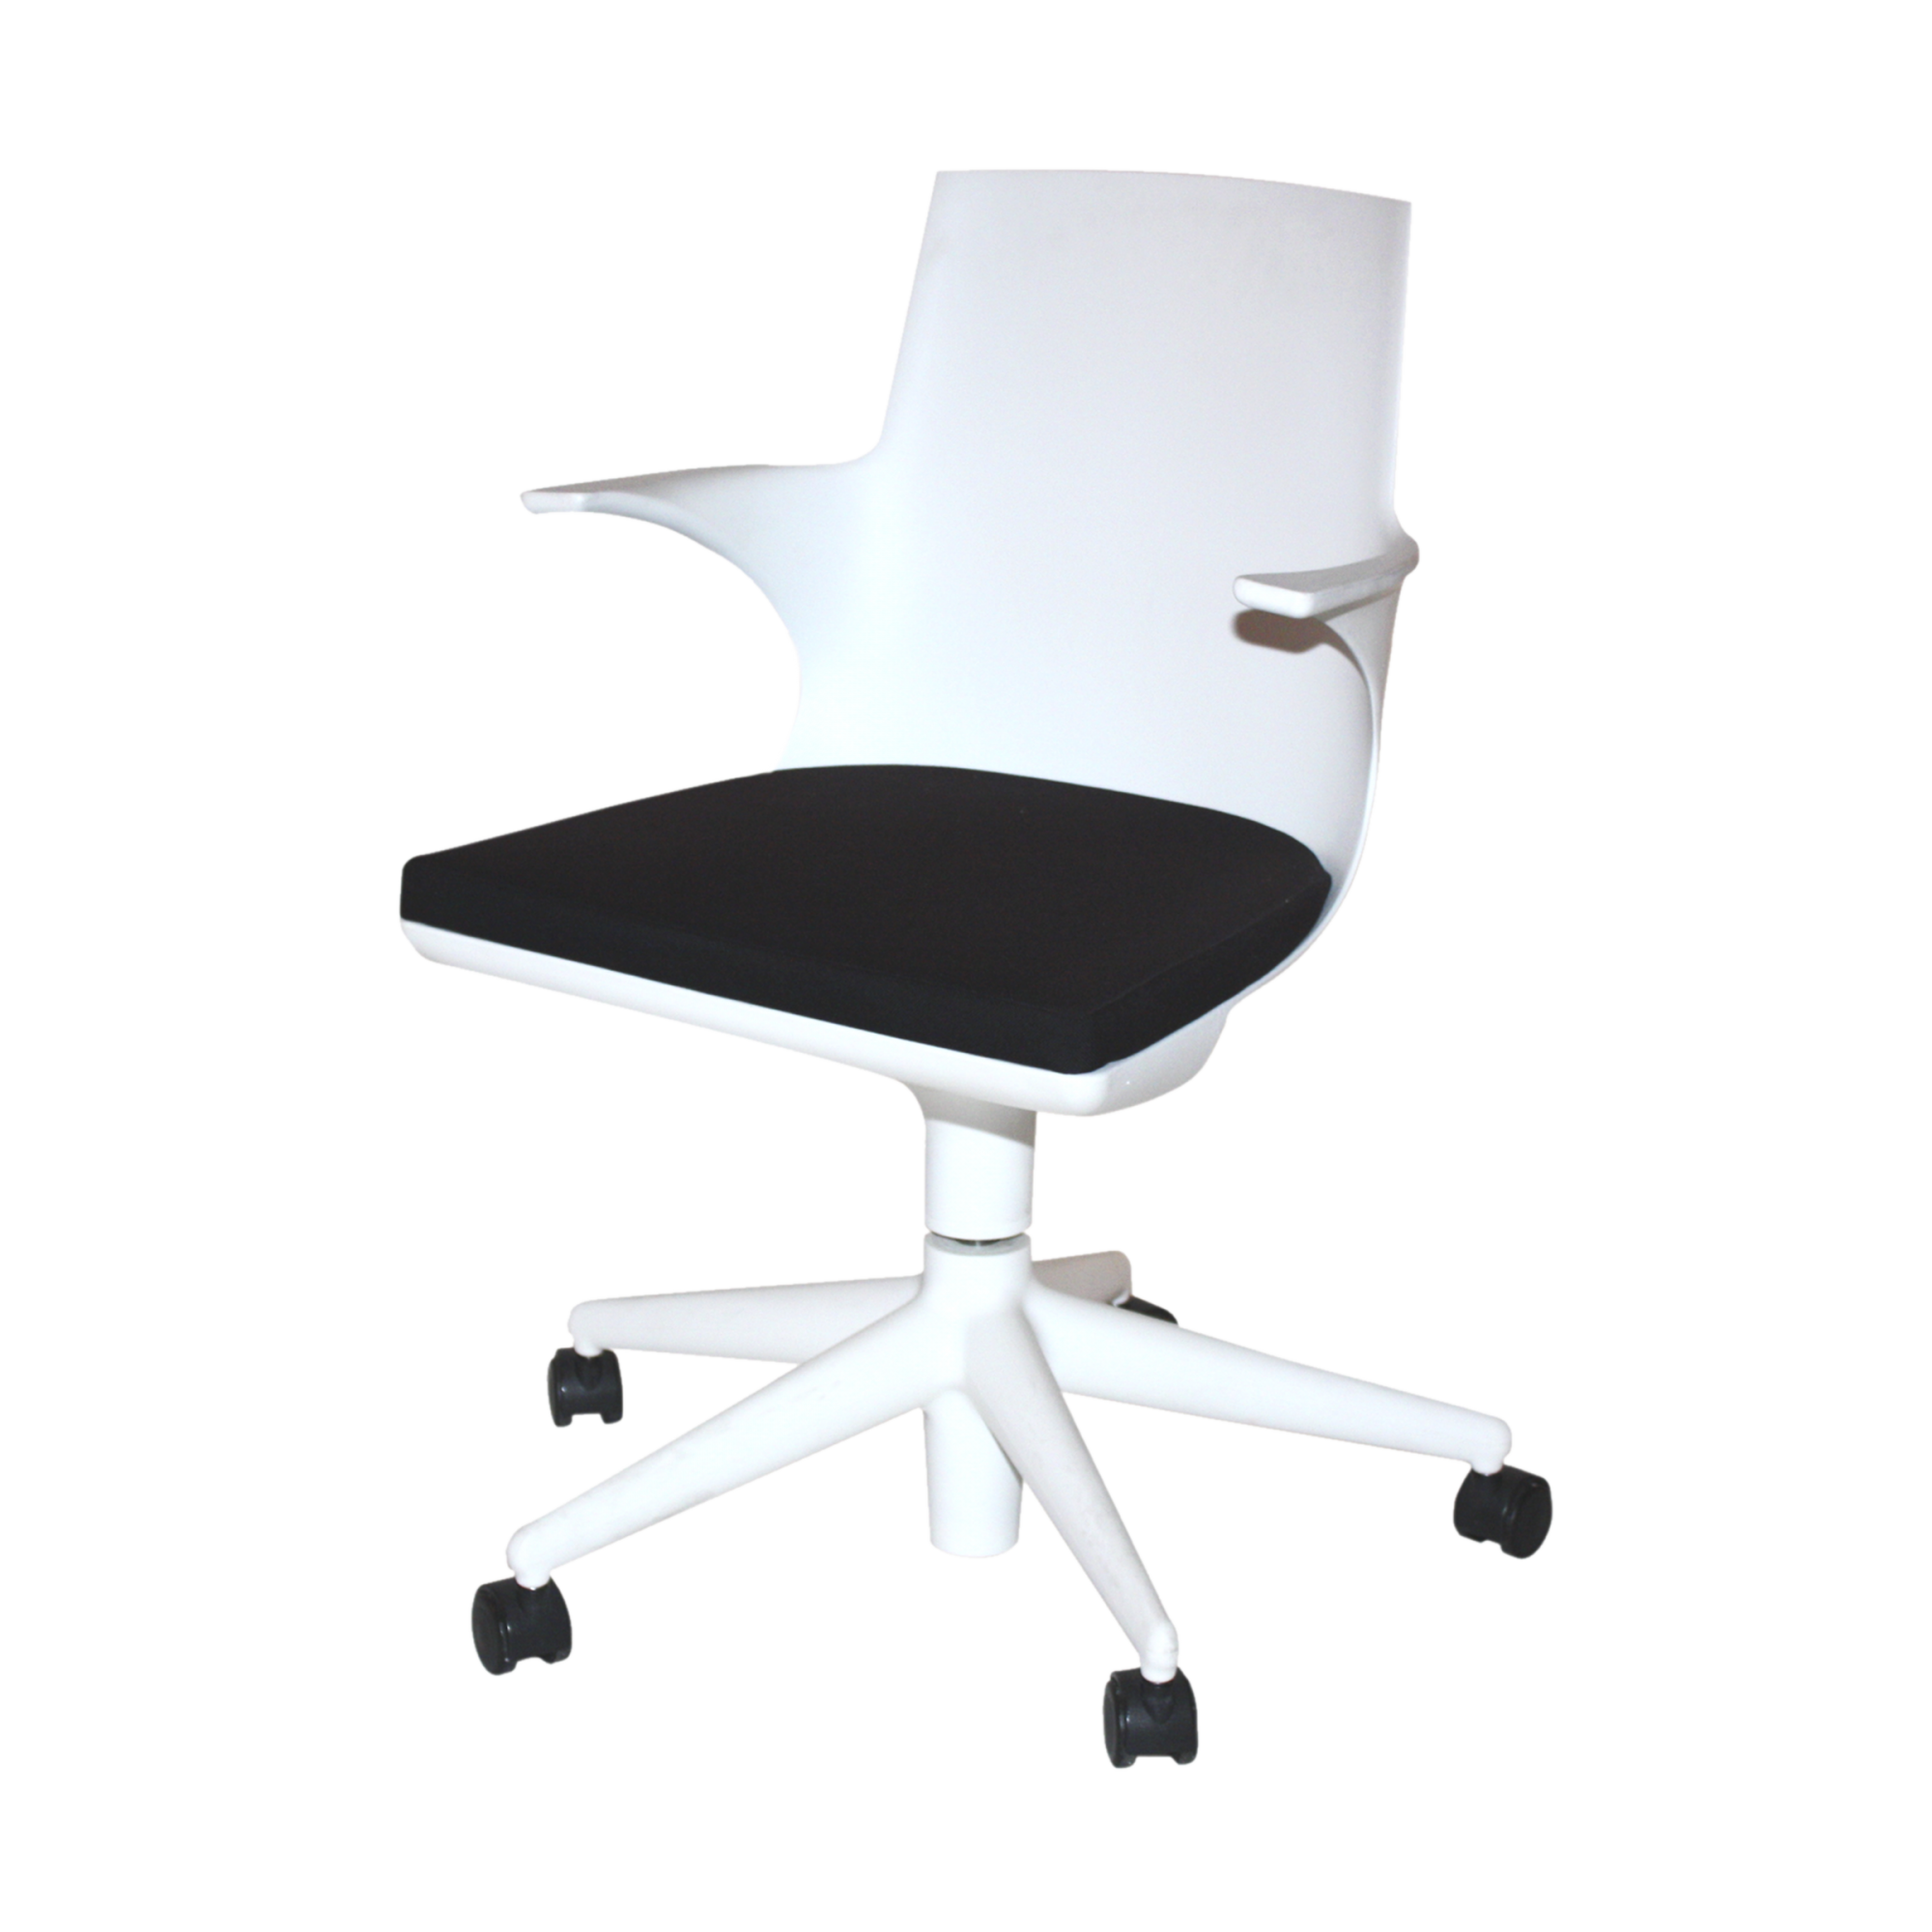 spoon chair with wheels white  black rental - spoon chair with wheels white  black